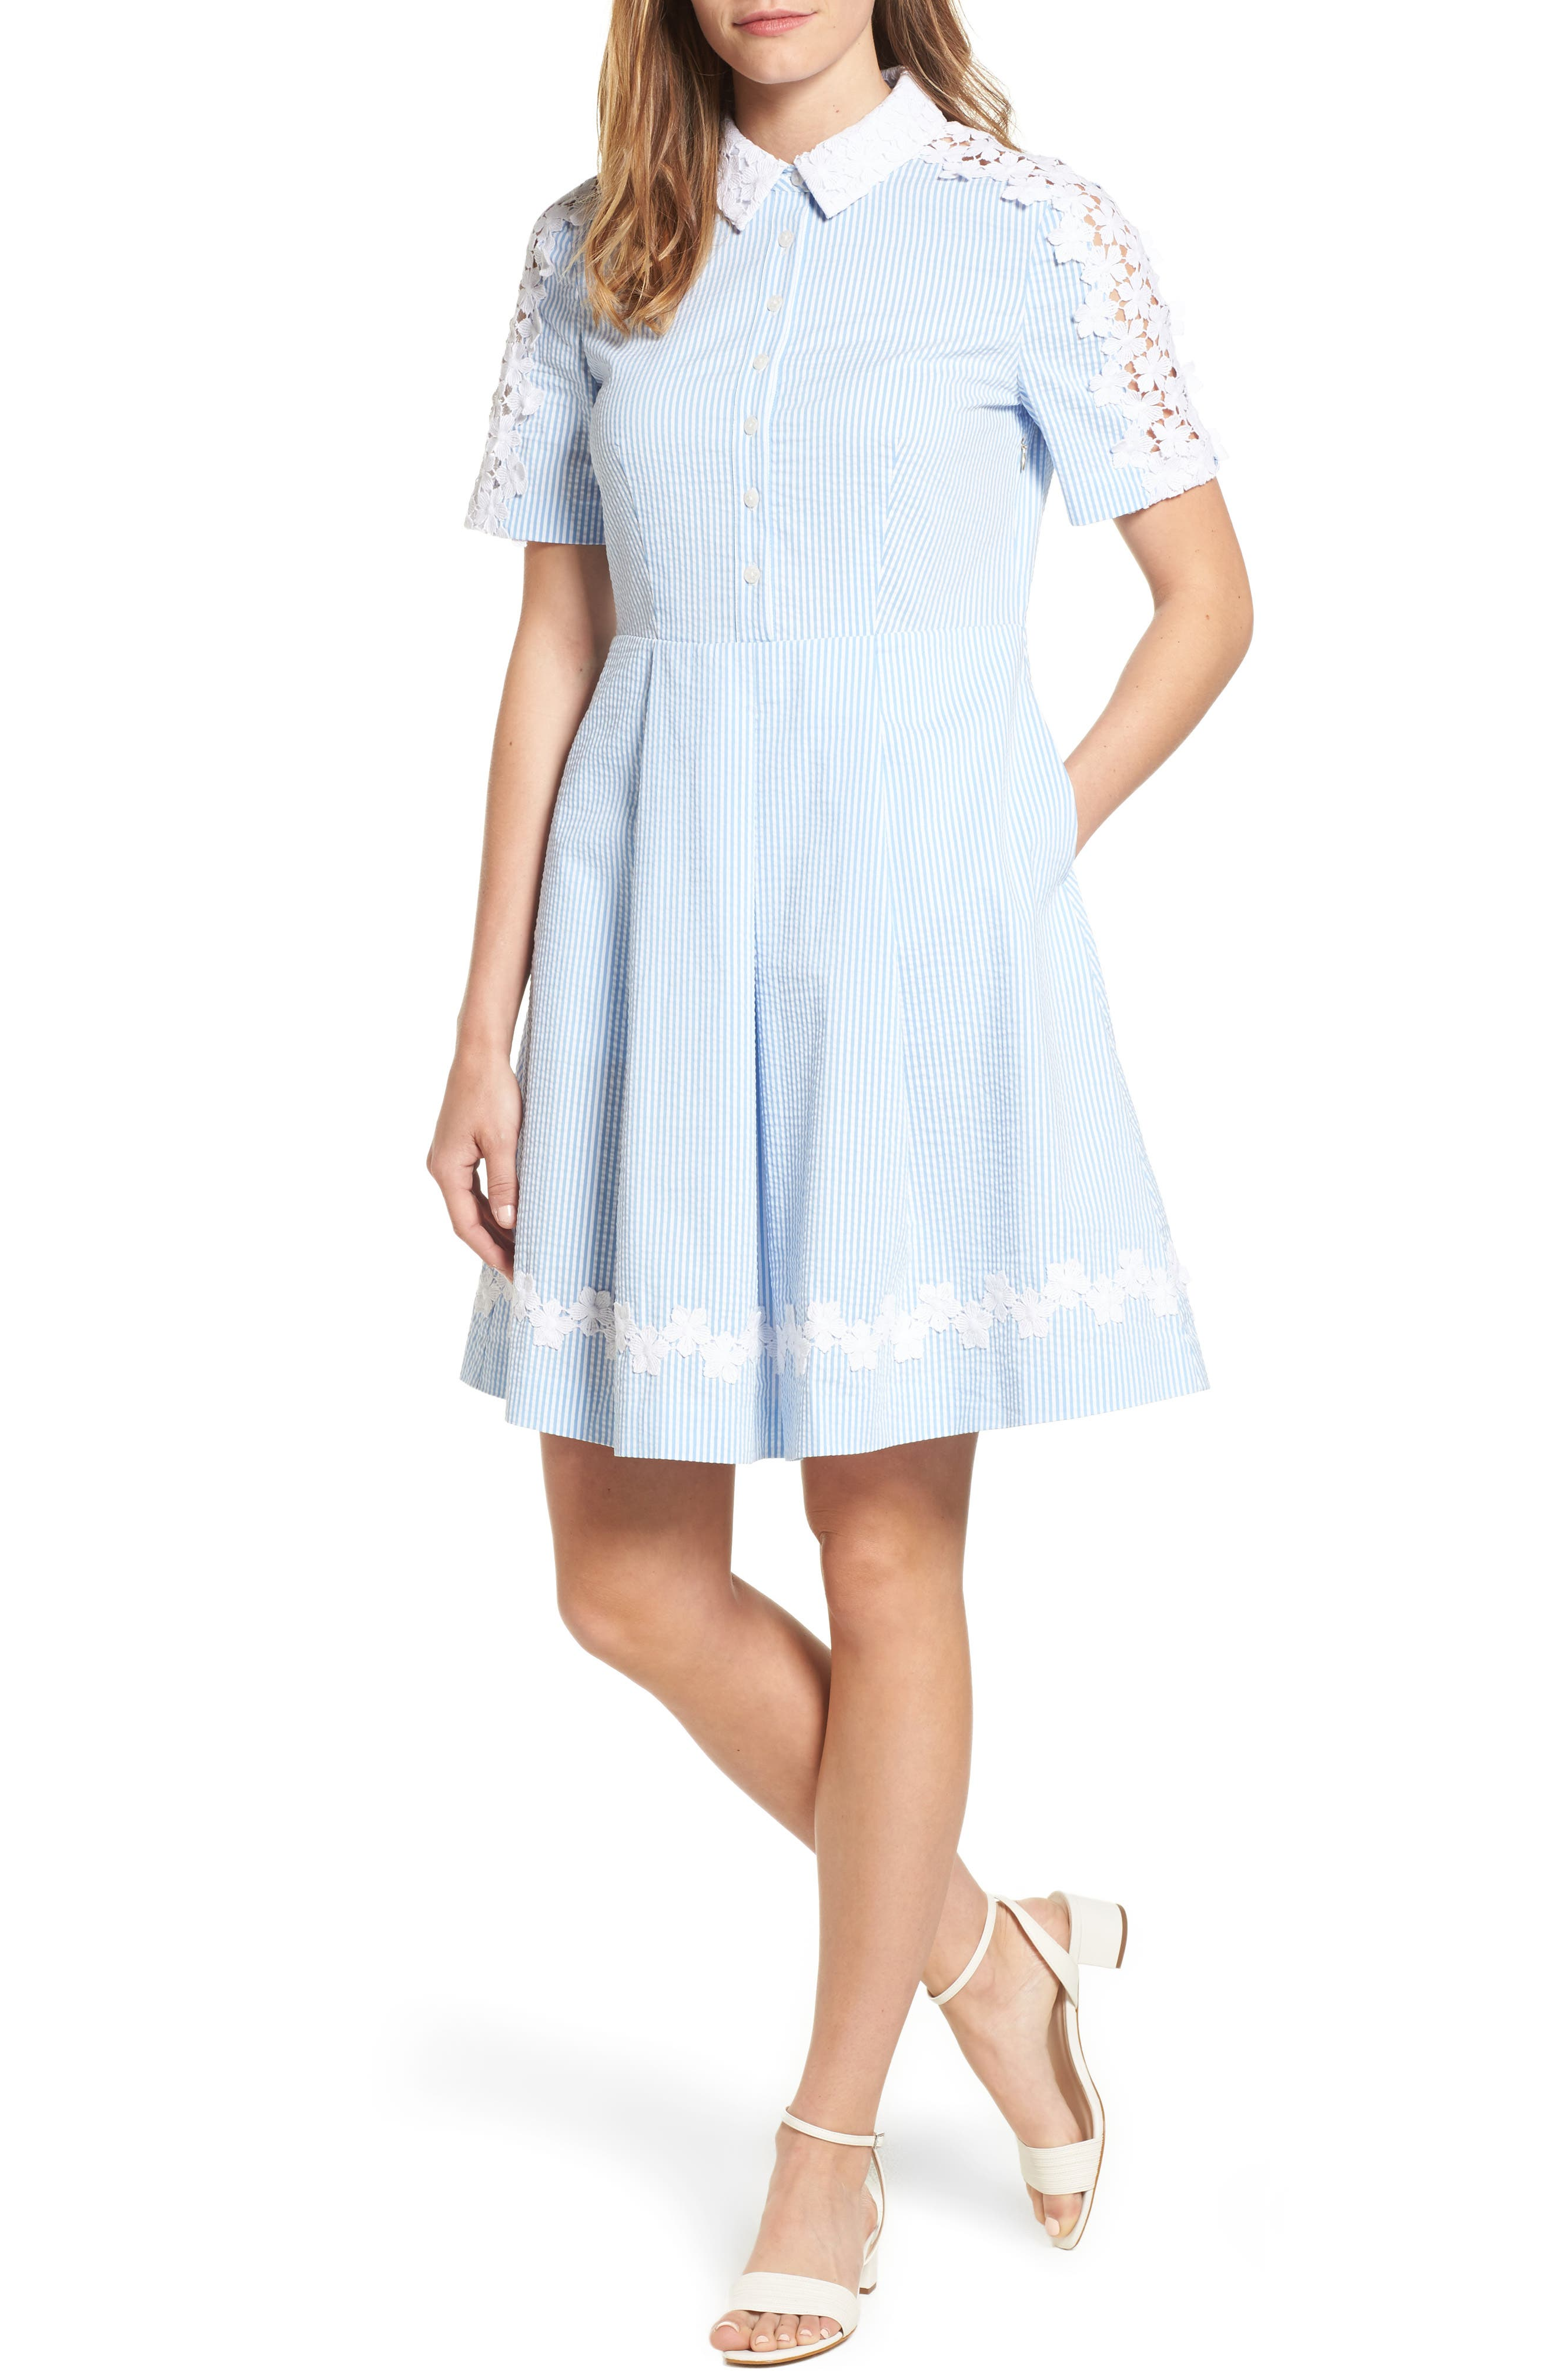 Draper James Seersucker Shirtdress (Nordstrom Exclusive)